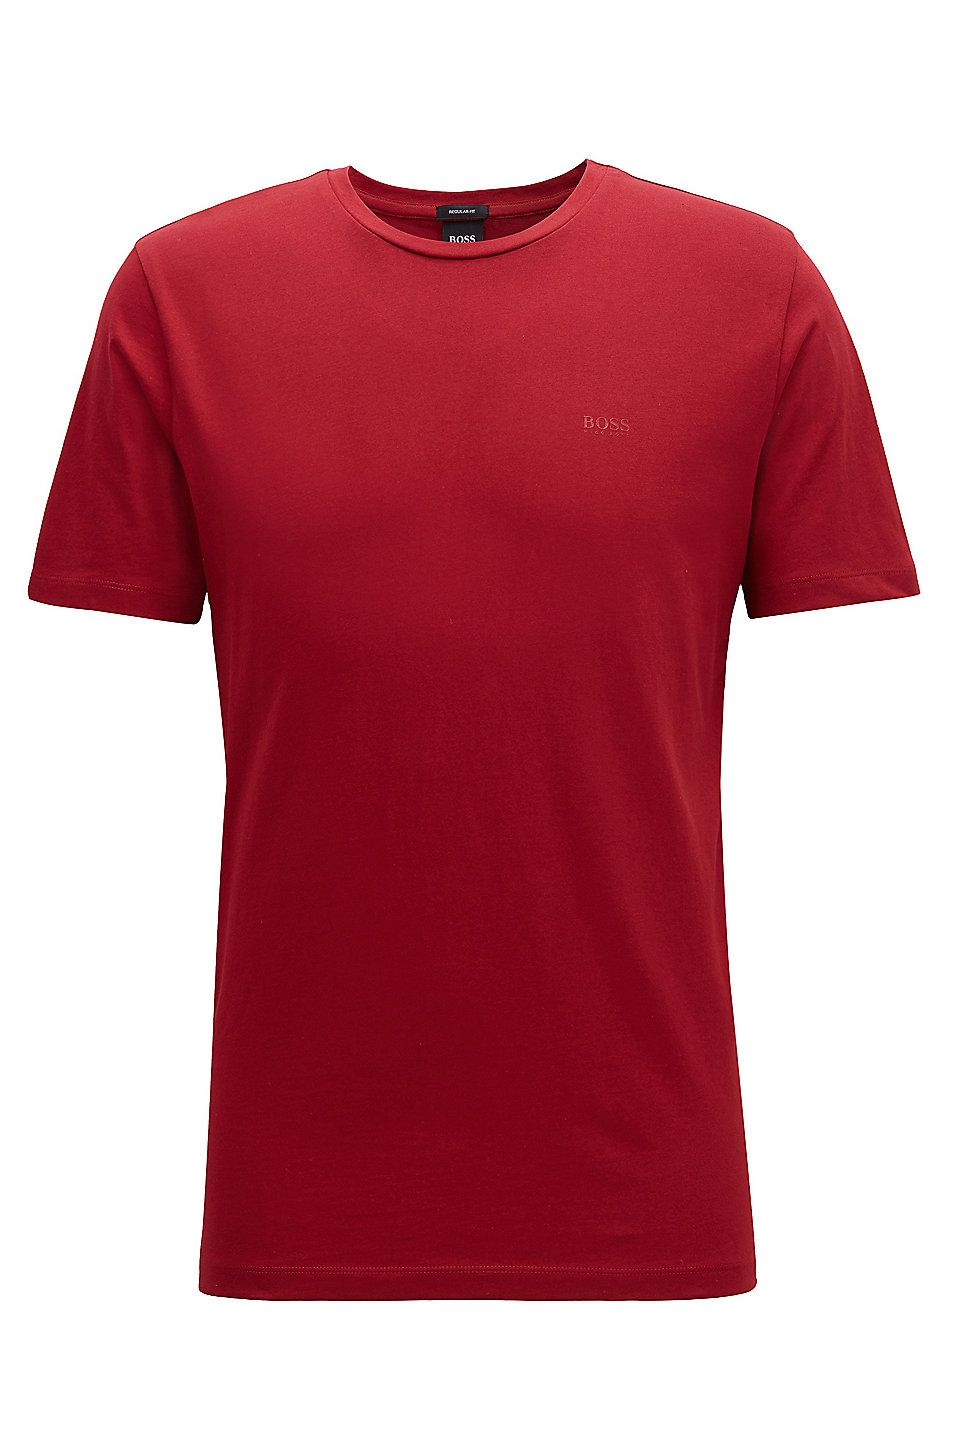 5750e53ab HUGO BOSS Crew-neck T-shirt in yarn-dyed single jersey - Dark Red T-Shirts  from BOSS for Men in the official HUGO BOSS Online Store free shipping